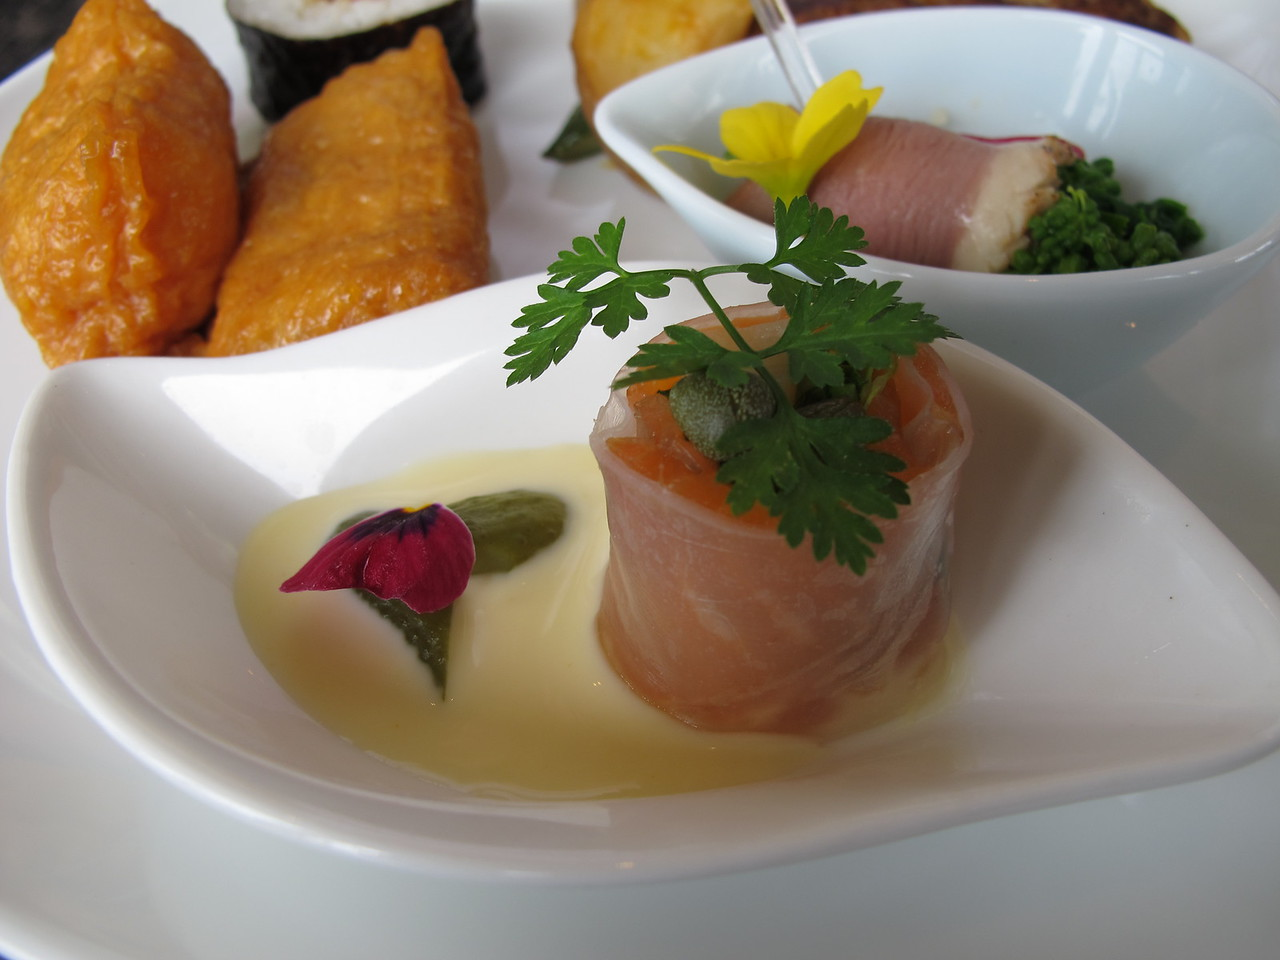 Roasted asparagus wrapped in smoked salmon and rice paper amuse-bouche. ANA Suite Lounge, NRT/RJAA.